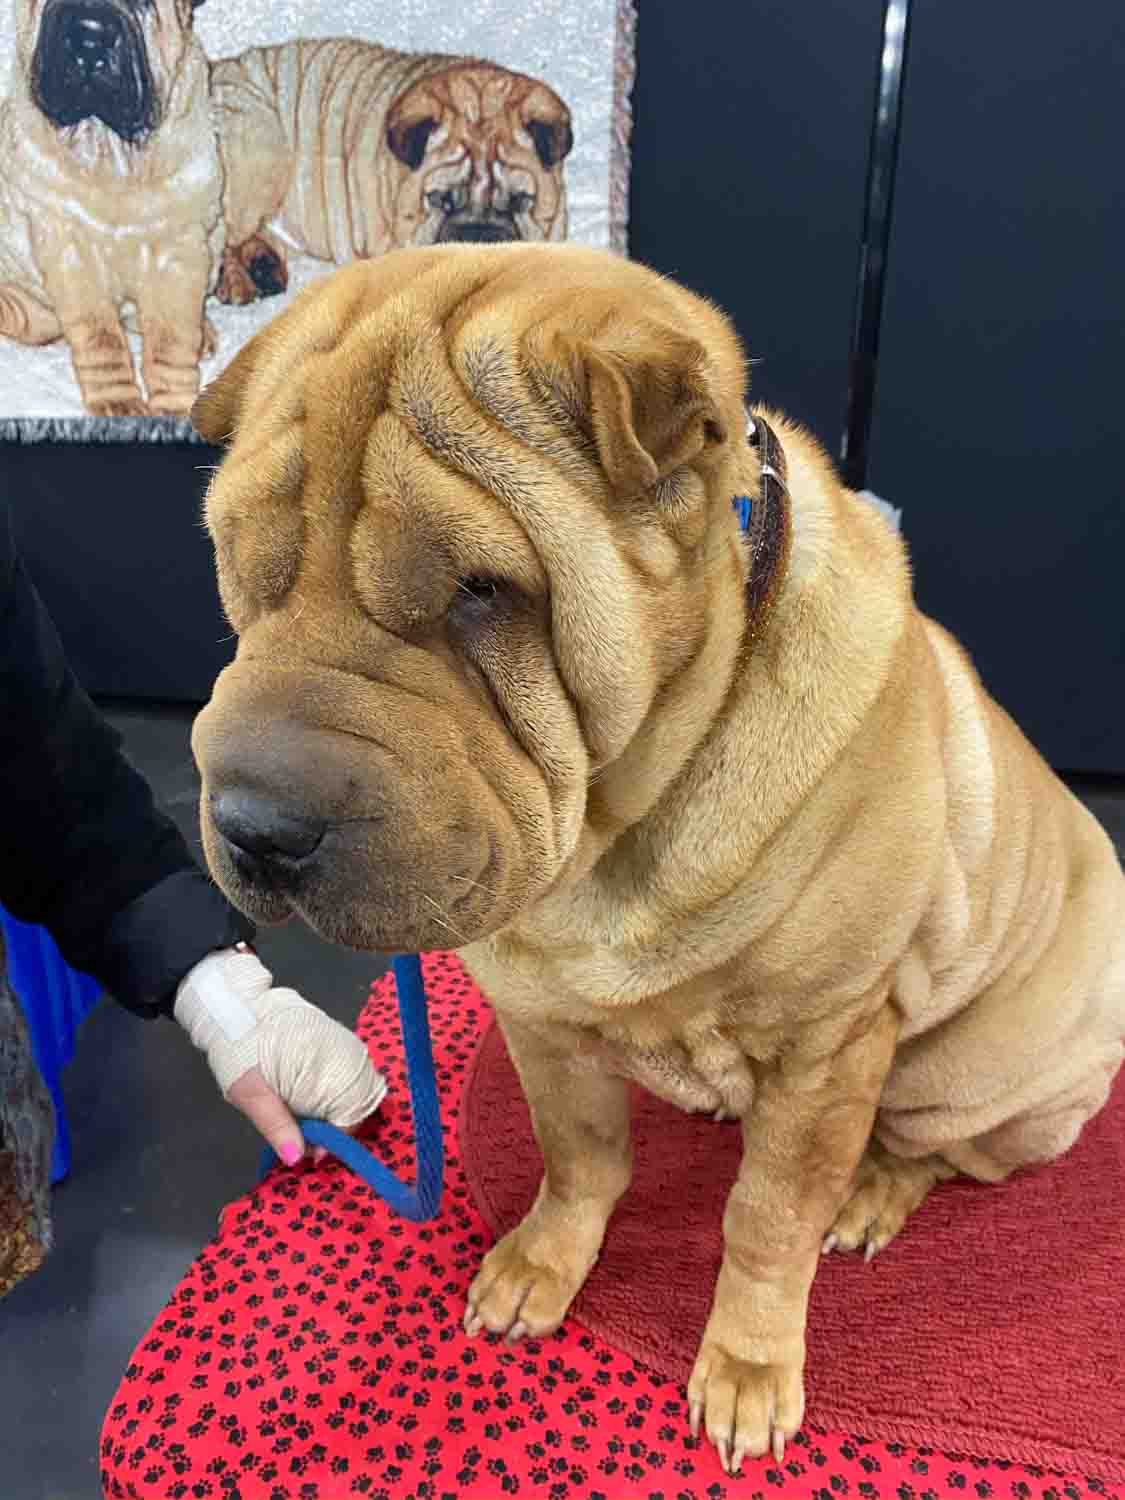 Are Shar Peis Good Apartment Dogs